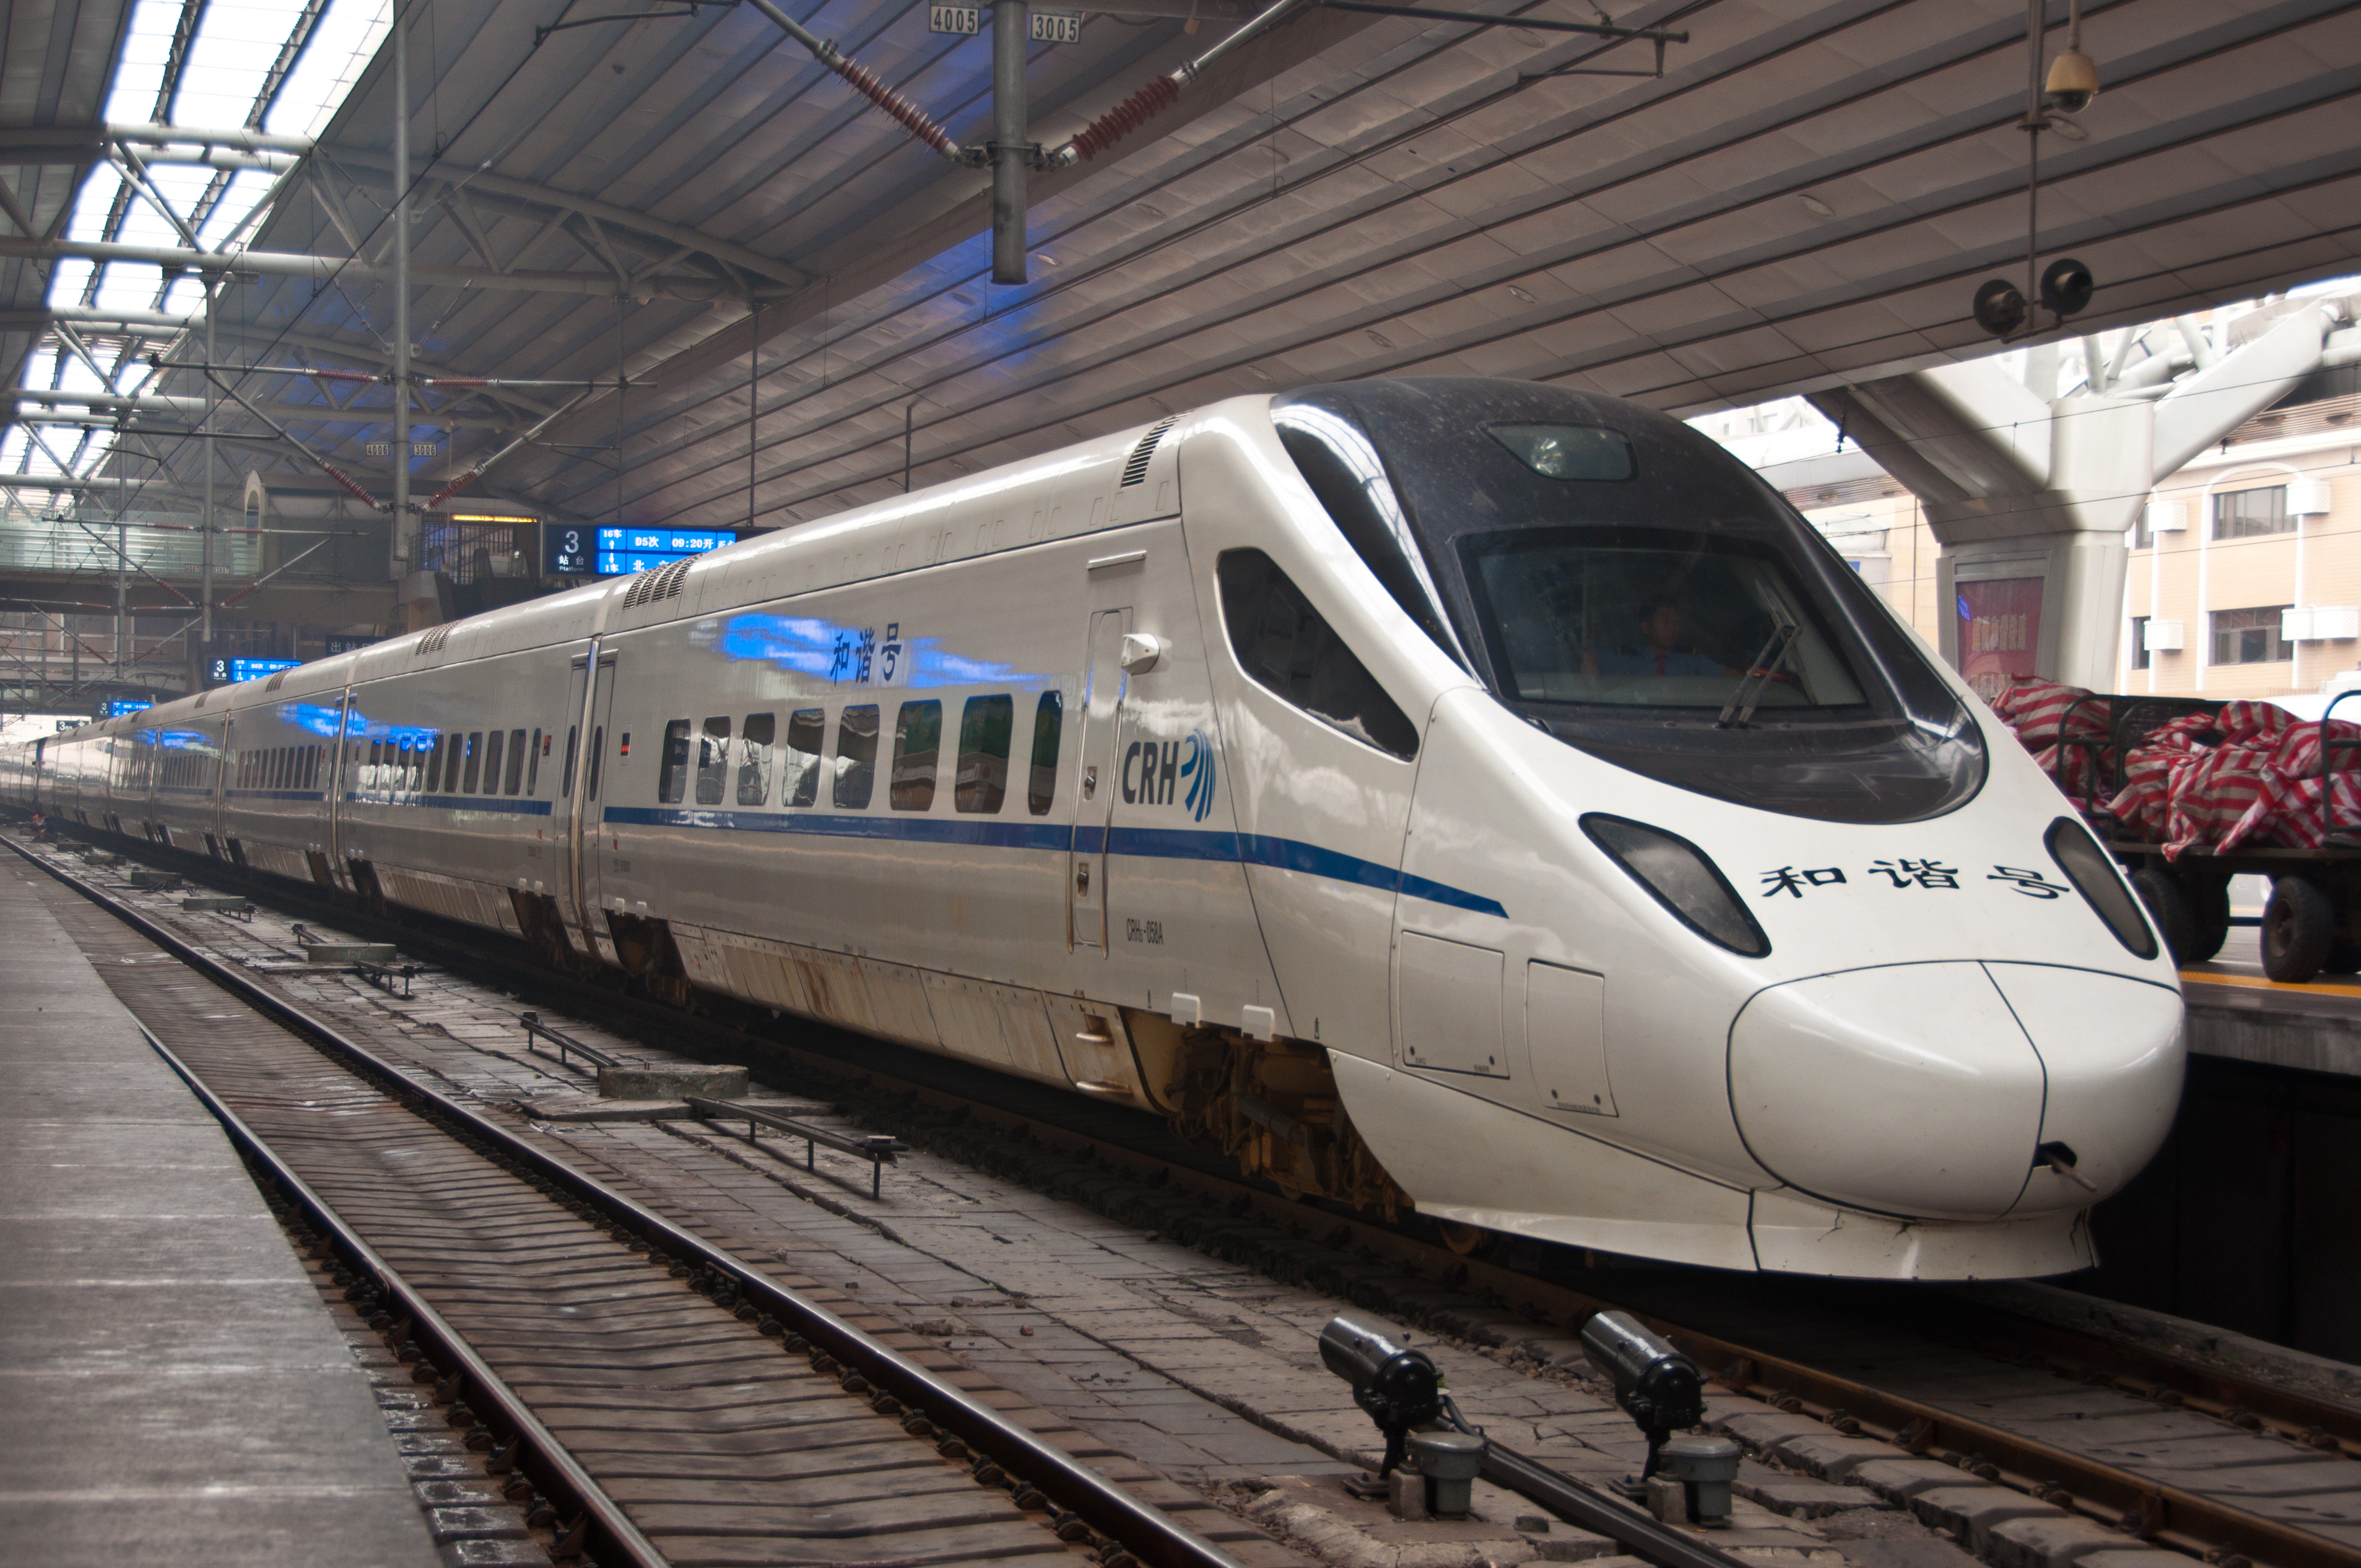 CRH5_in_Beijing_Railway_Station.jpg